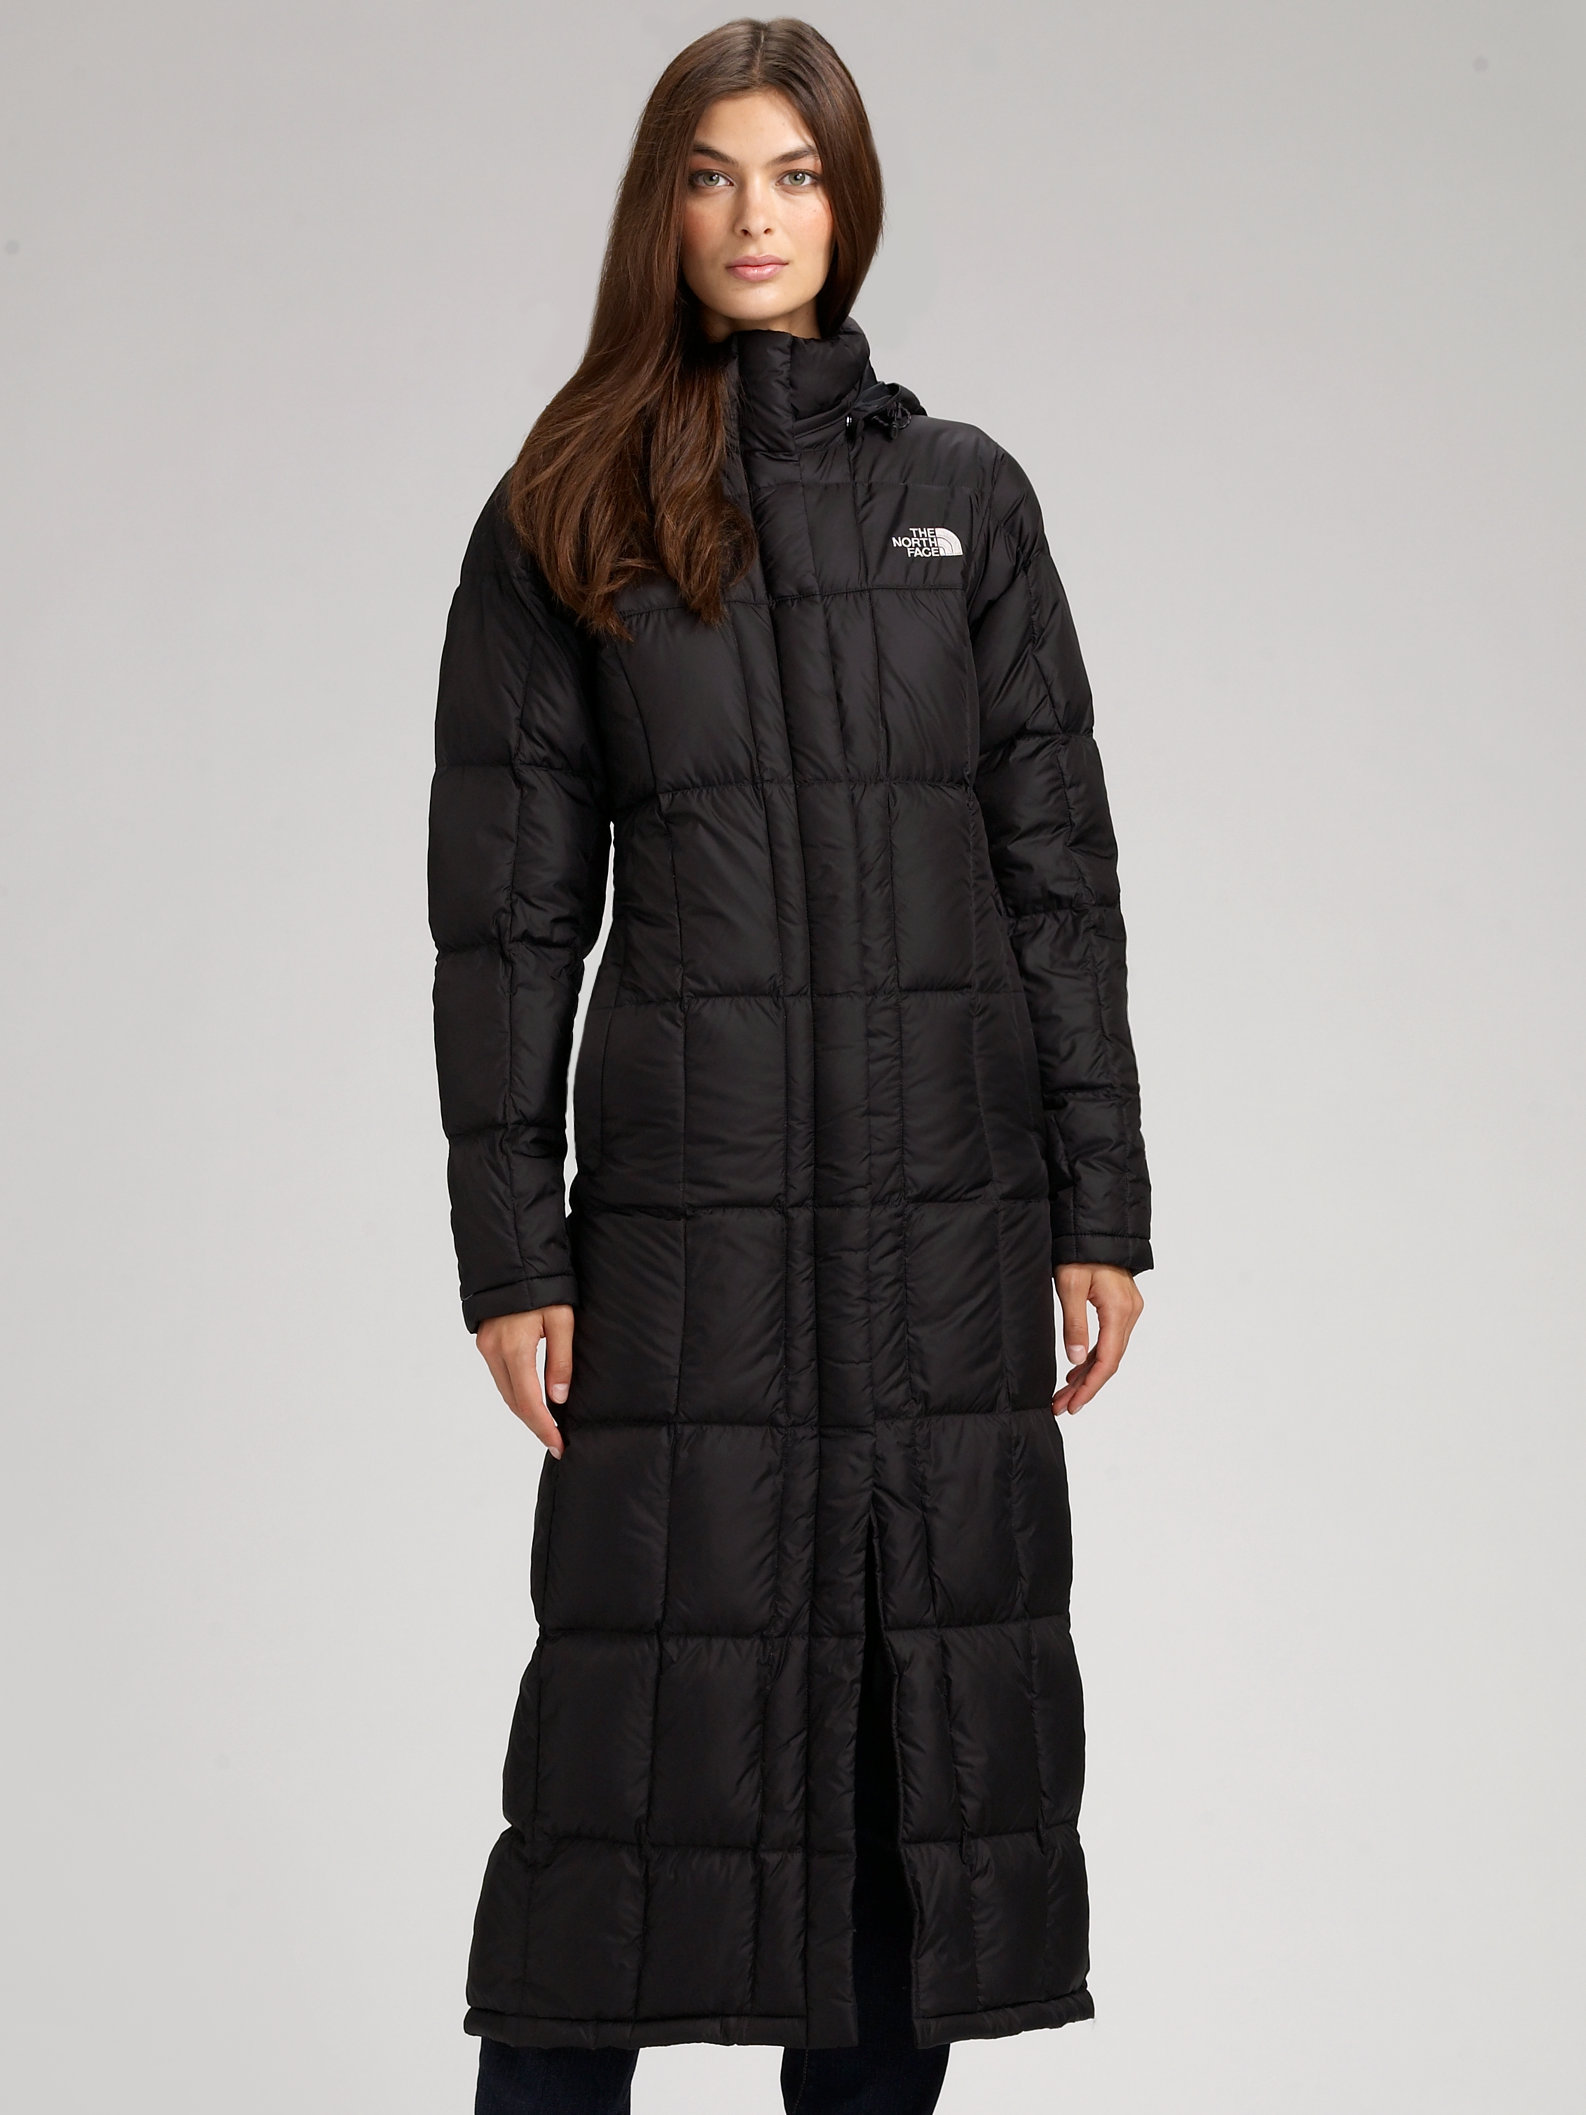 official photos 5925d ea15c ... shopping lyst the north face triple long puff jacket in black 842bf  e09ed